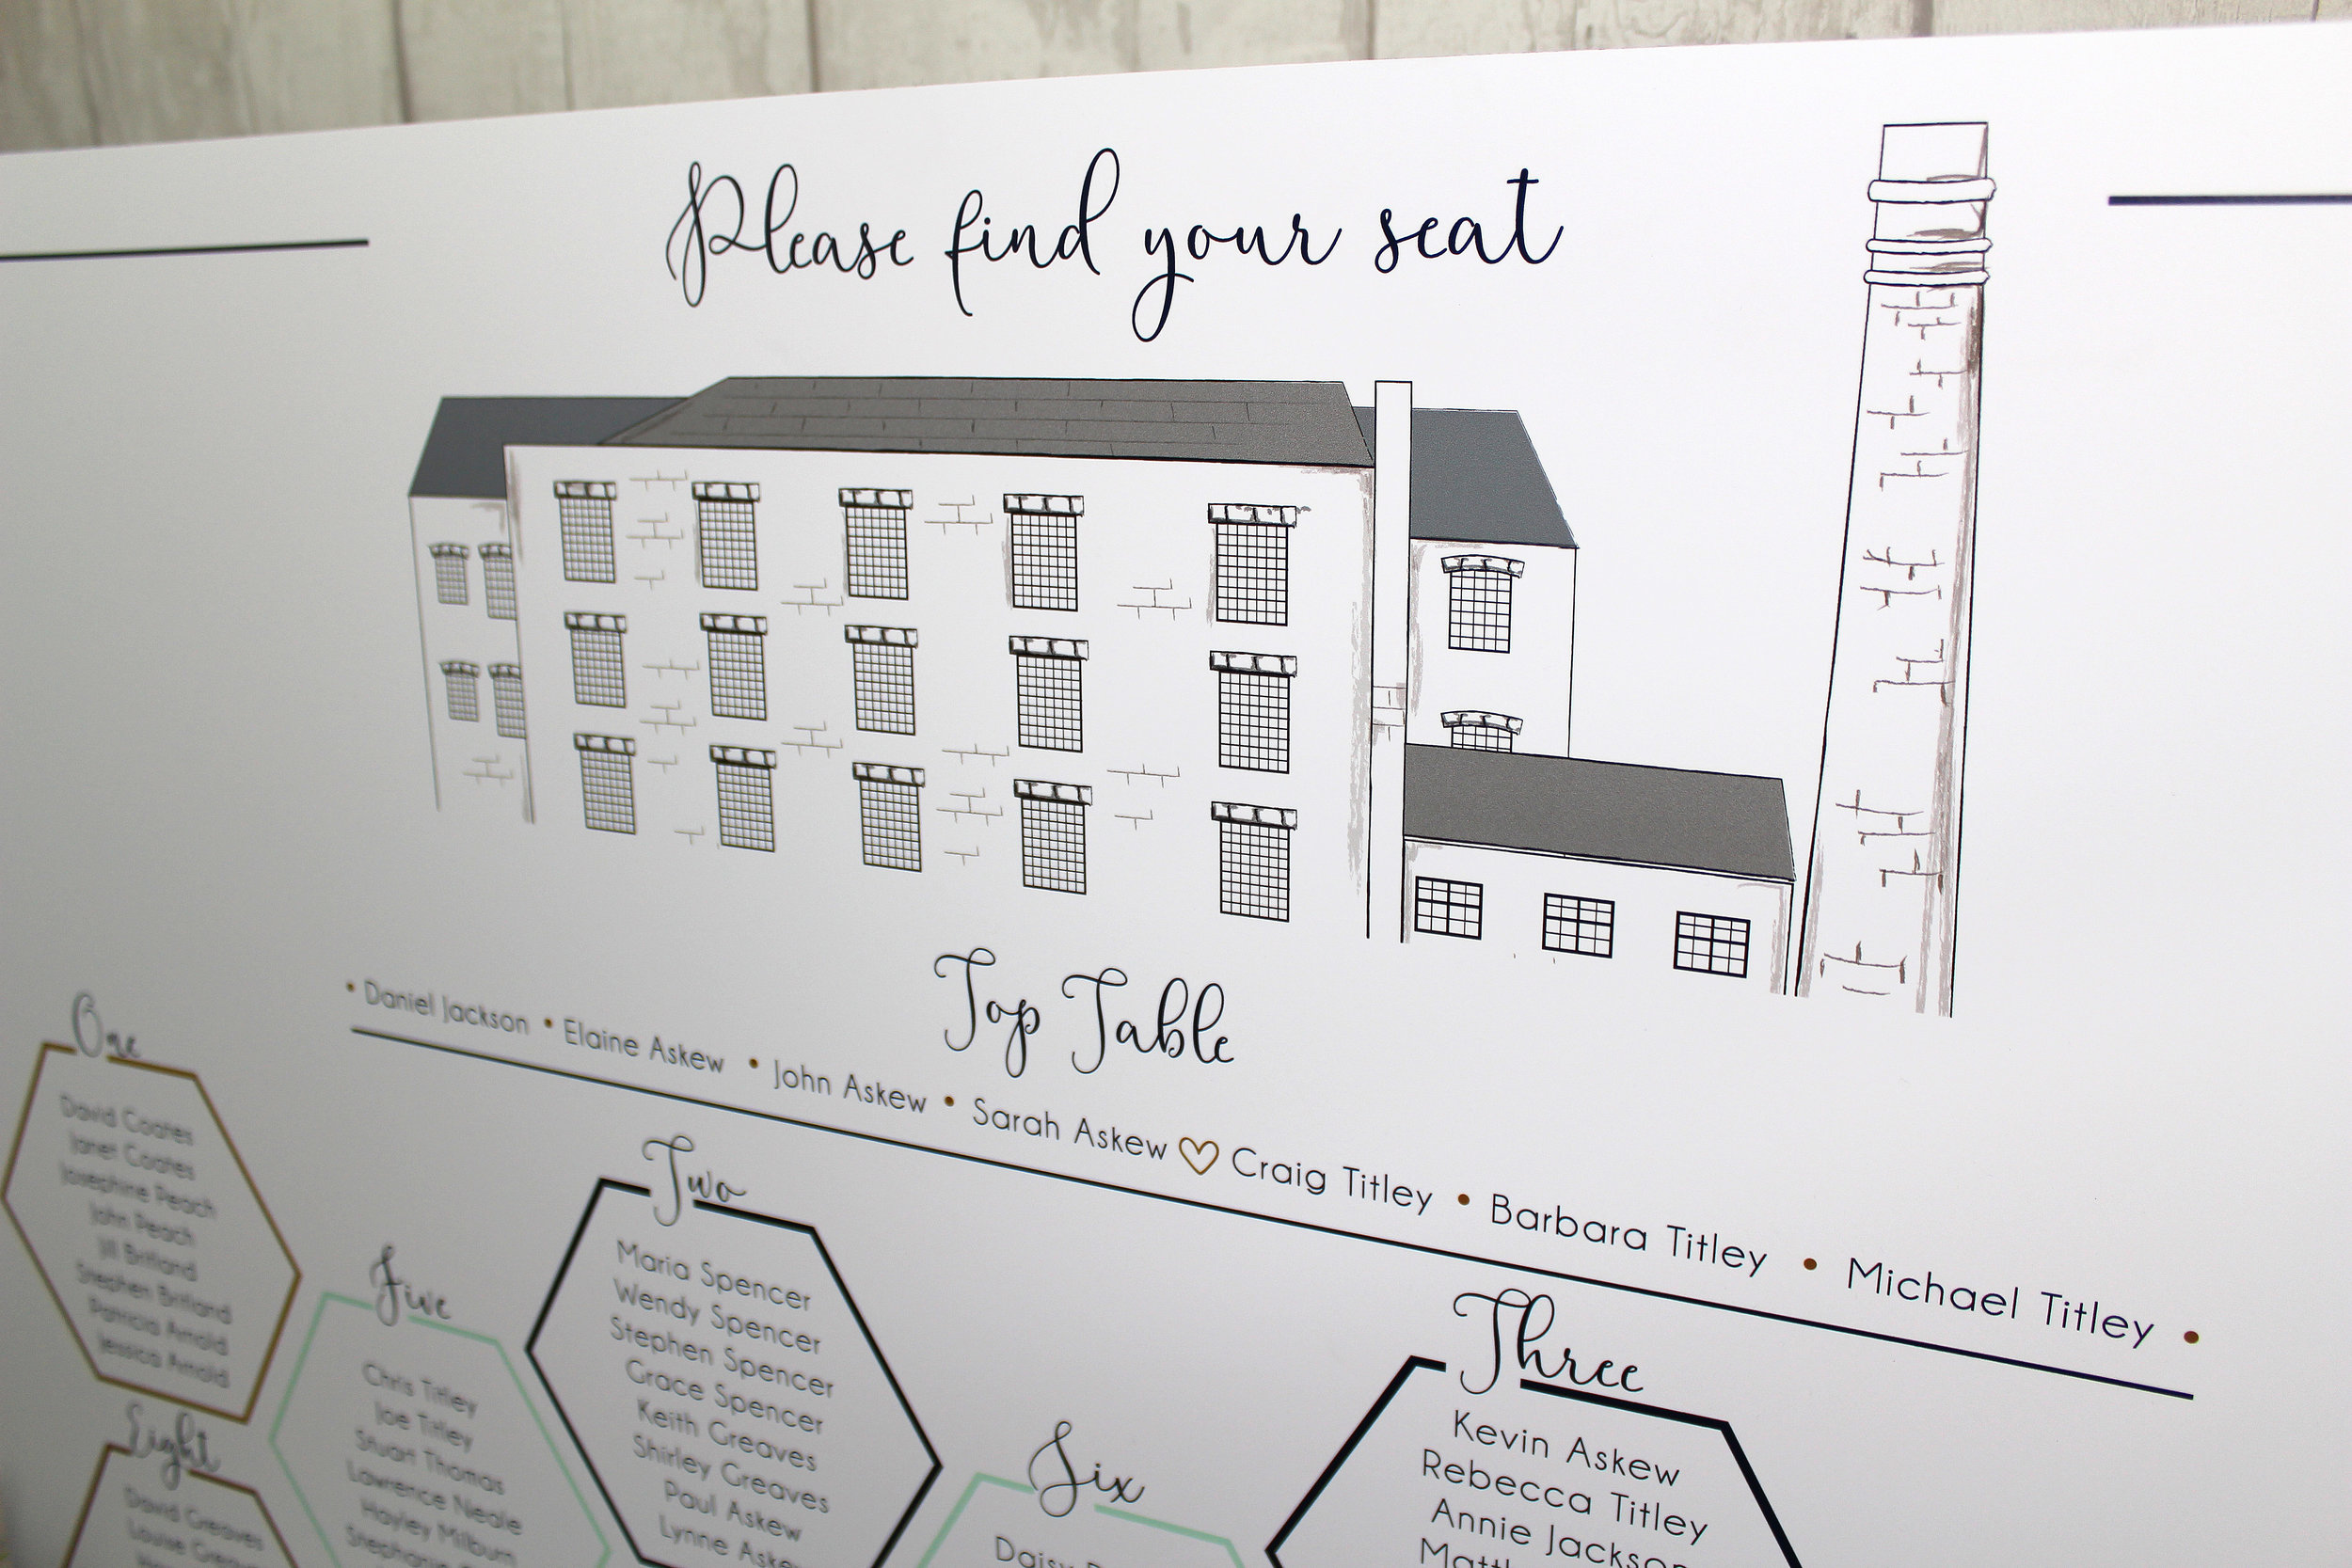 S&C seating plan-west mill-close up.jpg